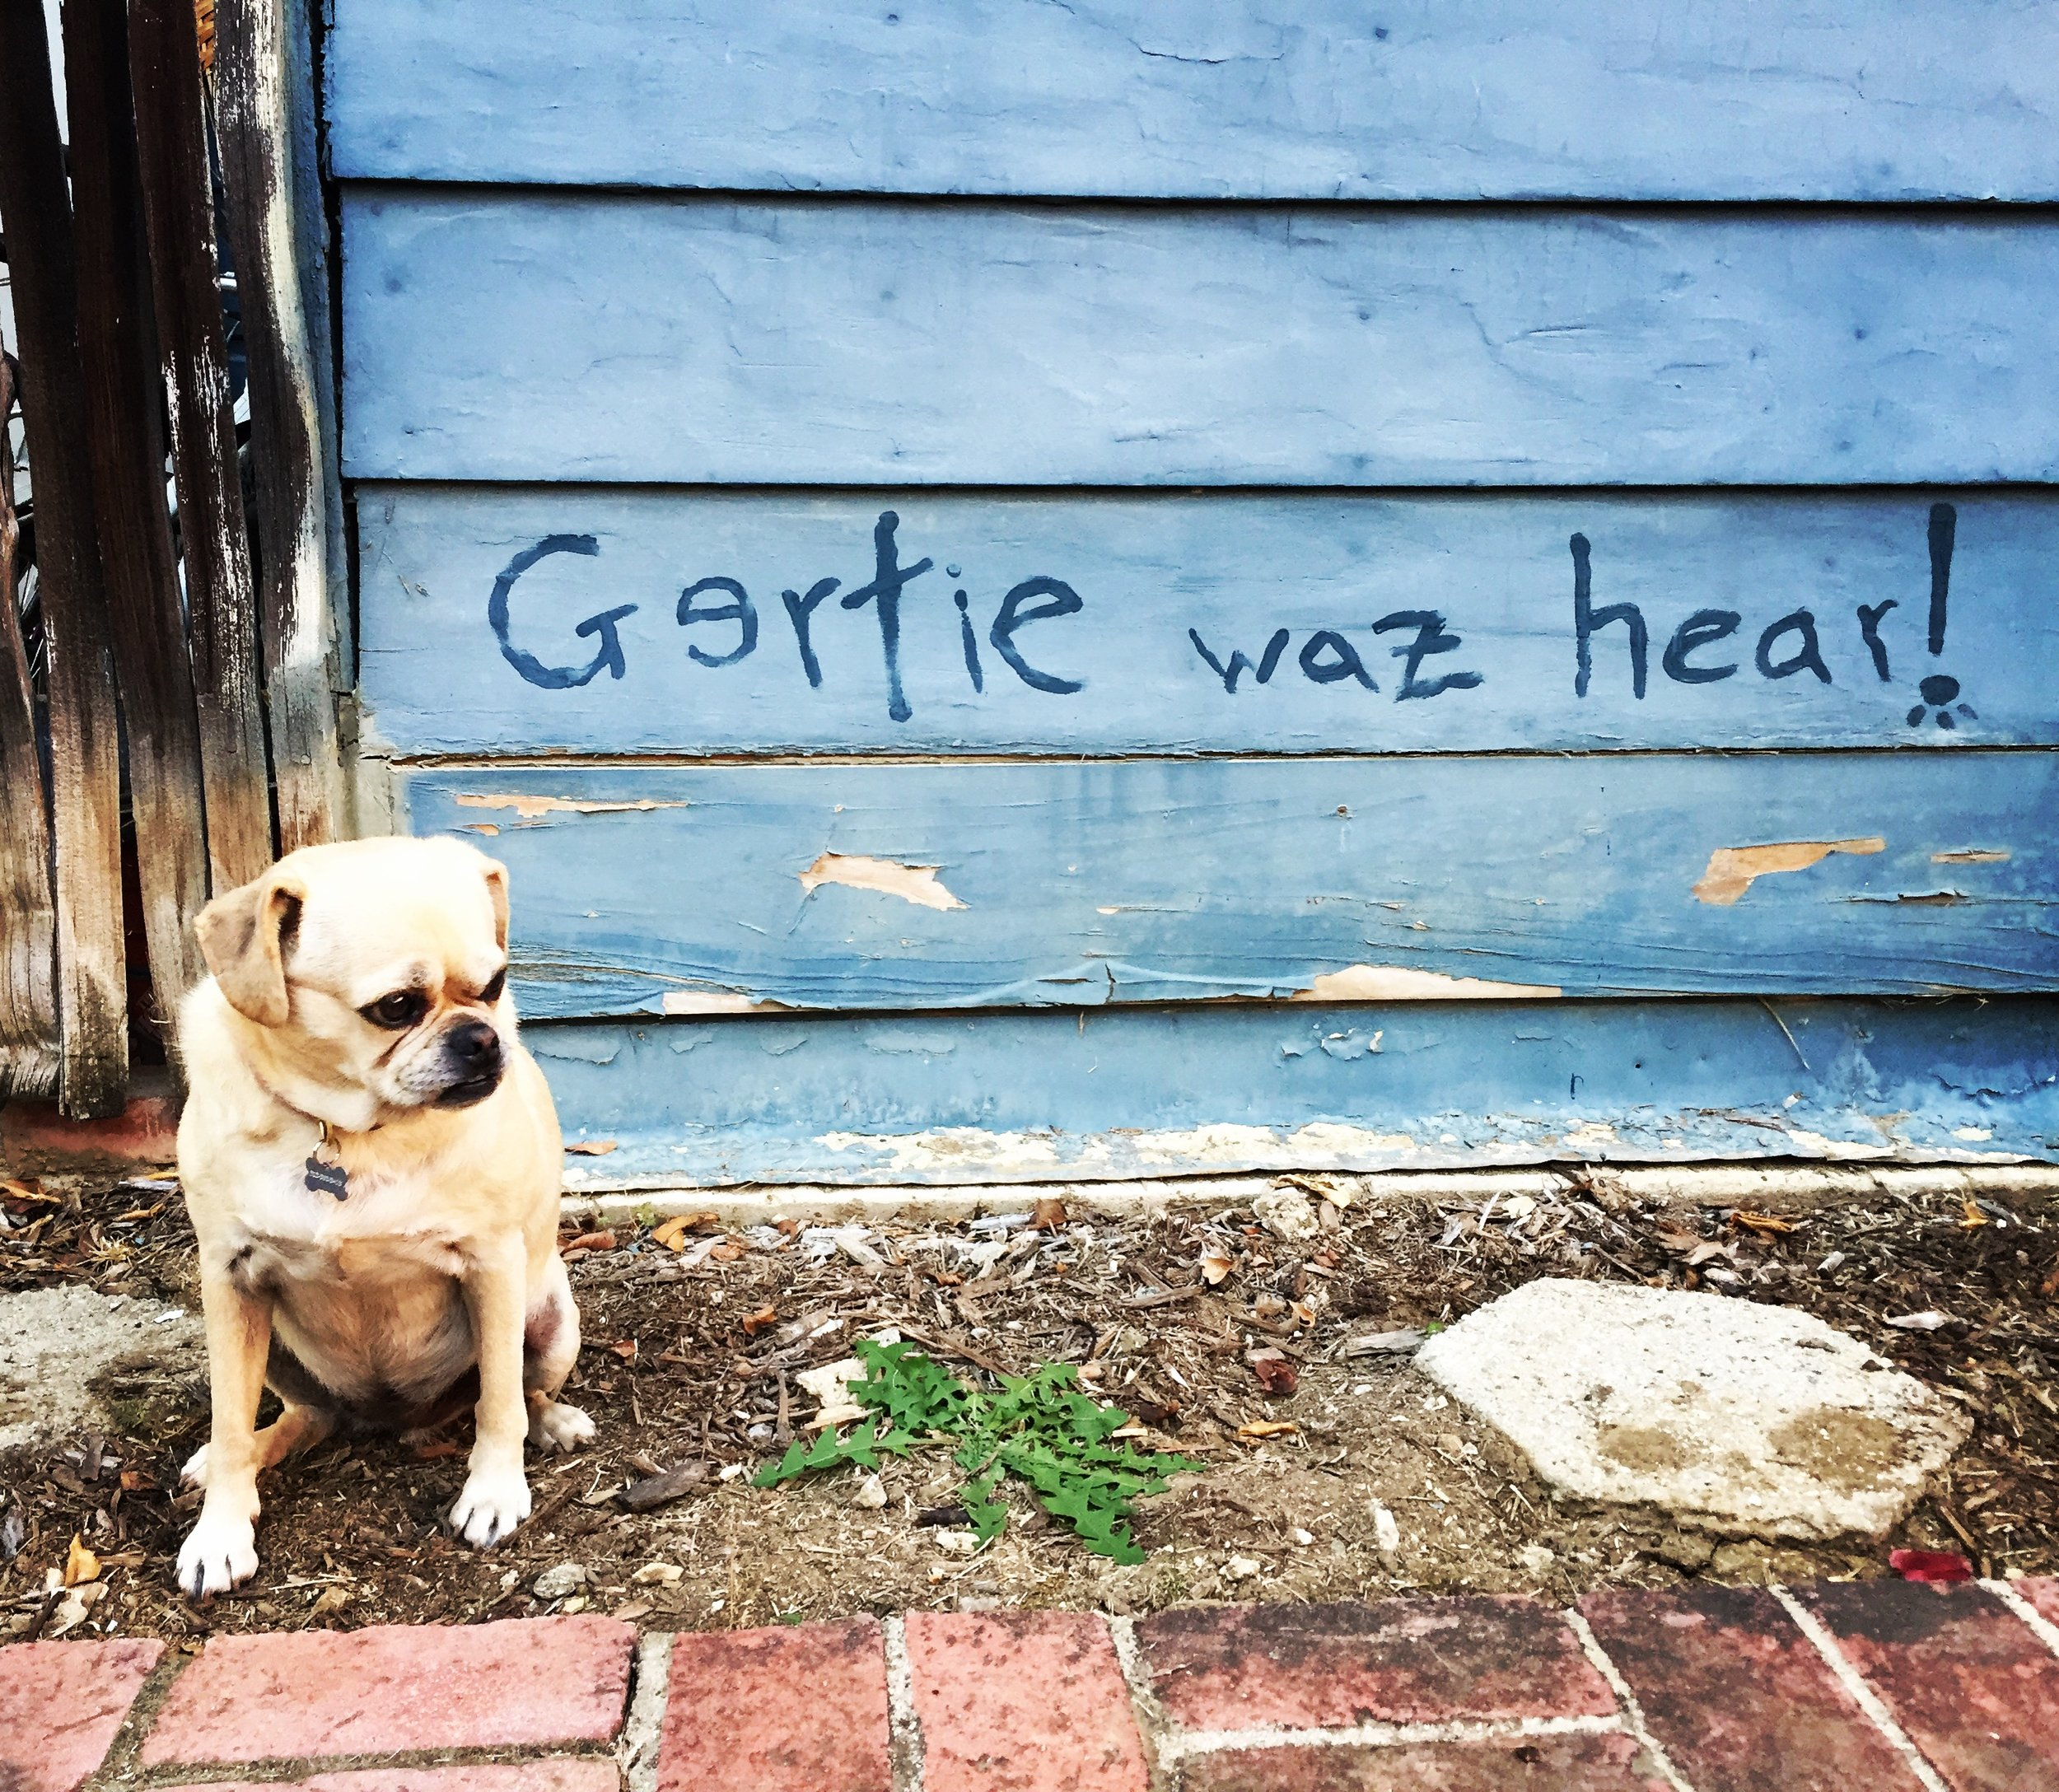 Came home to discover this graffiti on the side of the garage ... Gertie SWEARS she didn't do it ... but I don't know ... I mean, the spelling... the guilty look ... (LA 2016)